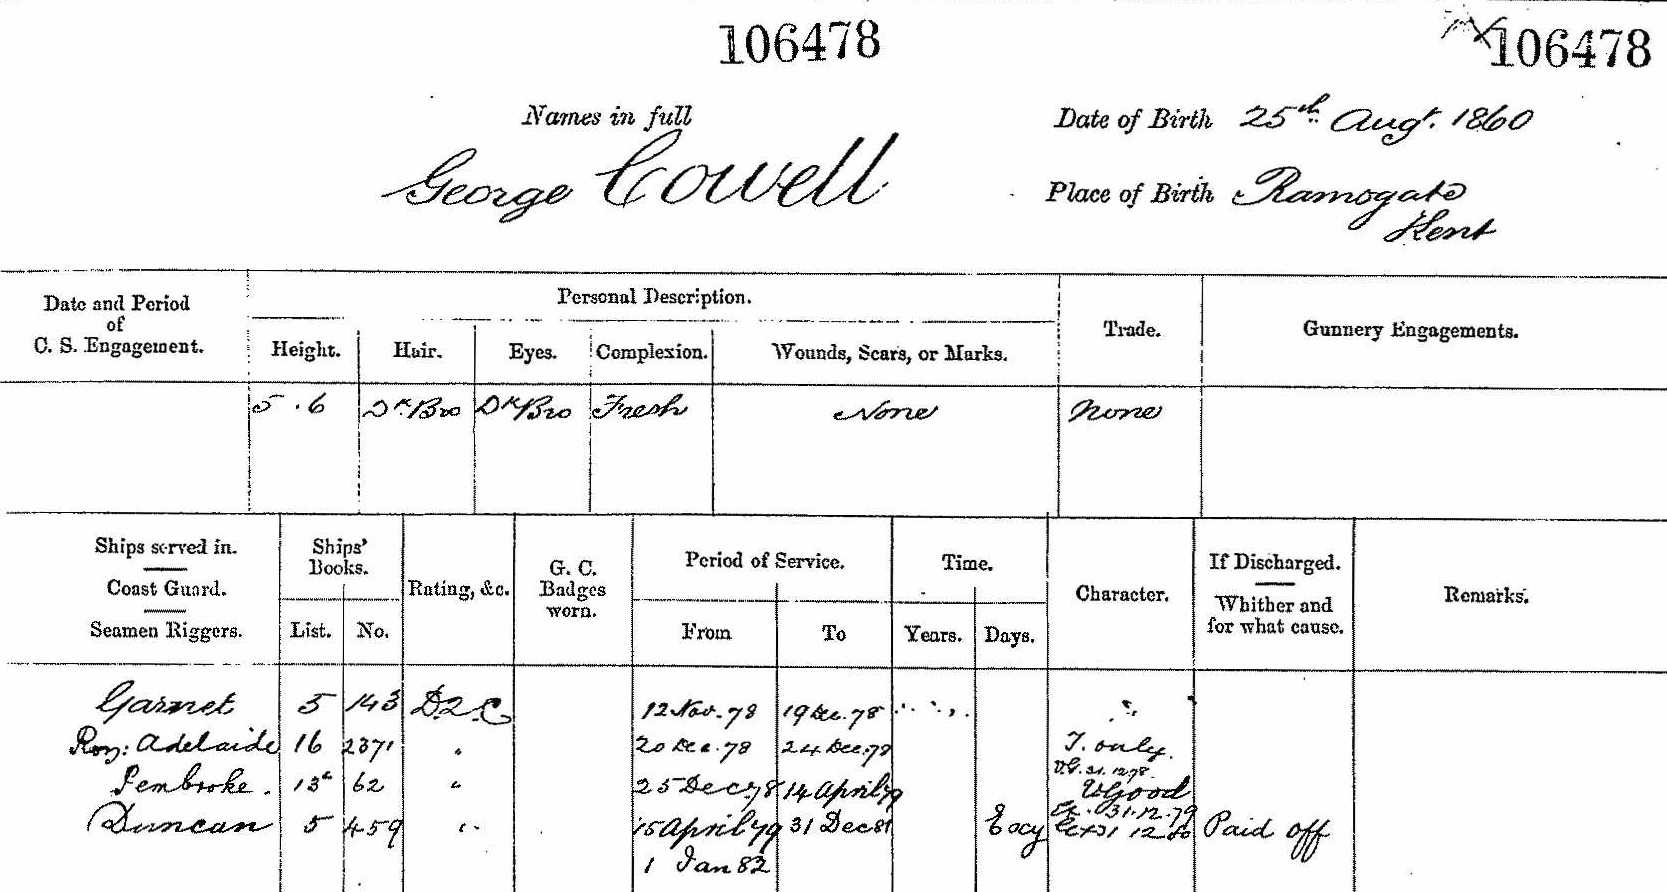 George Cowell - Naval Record